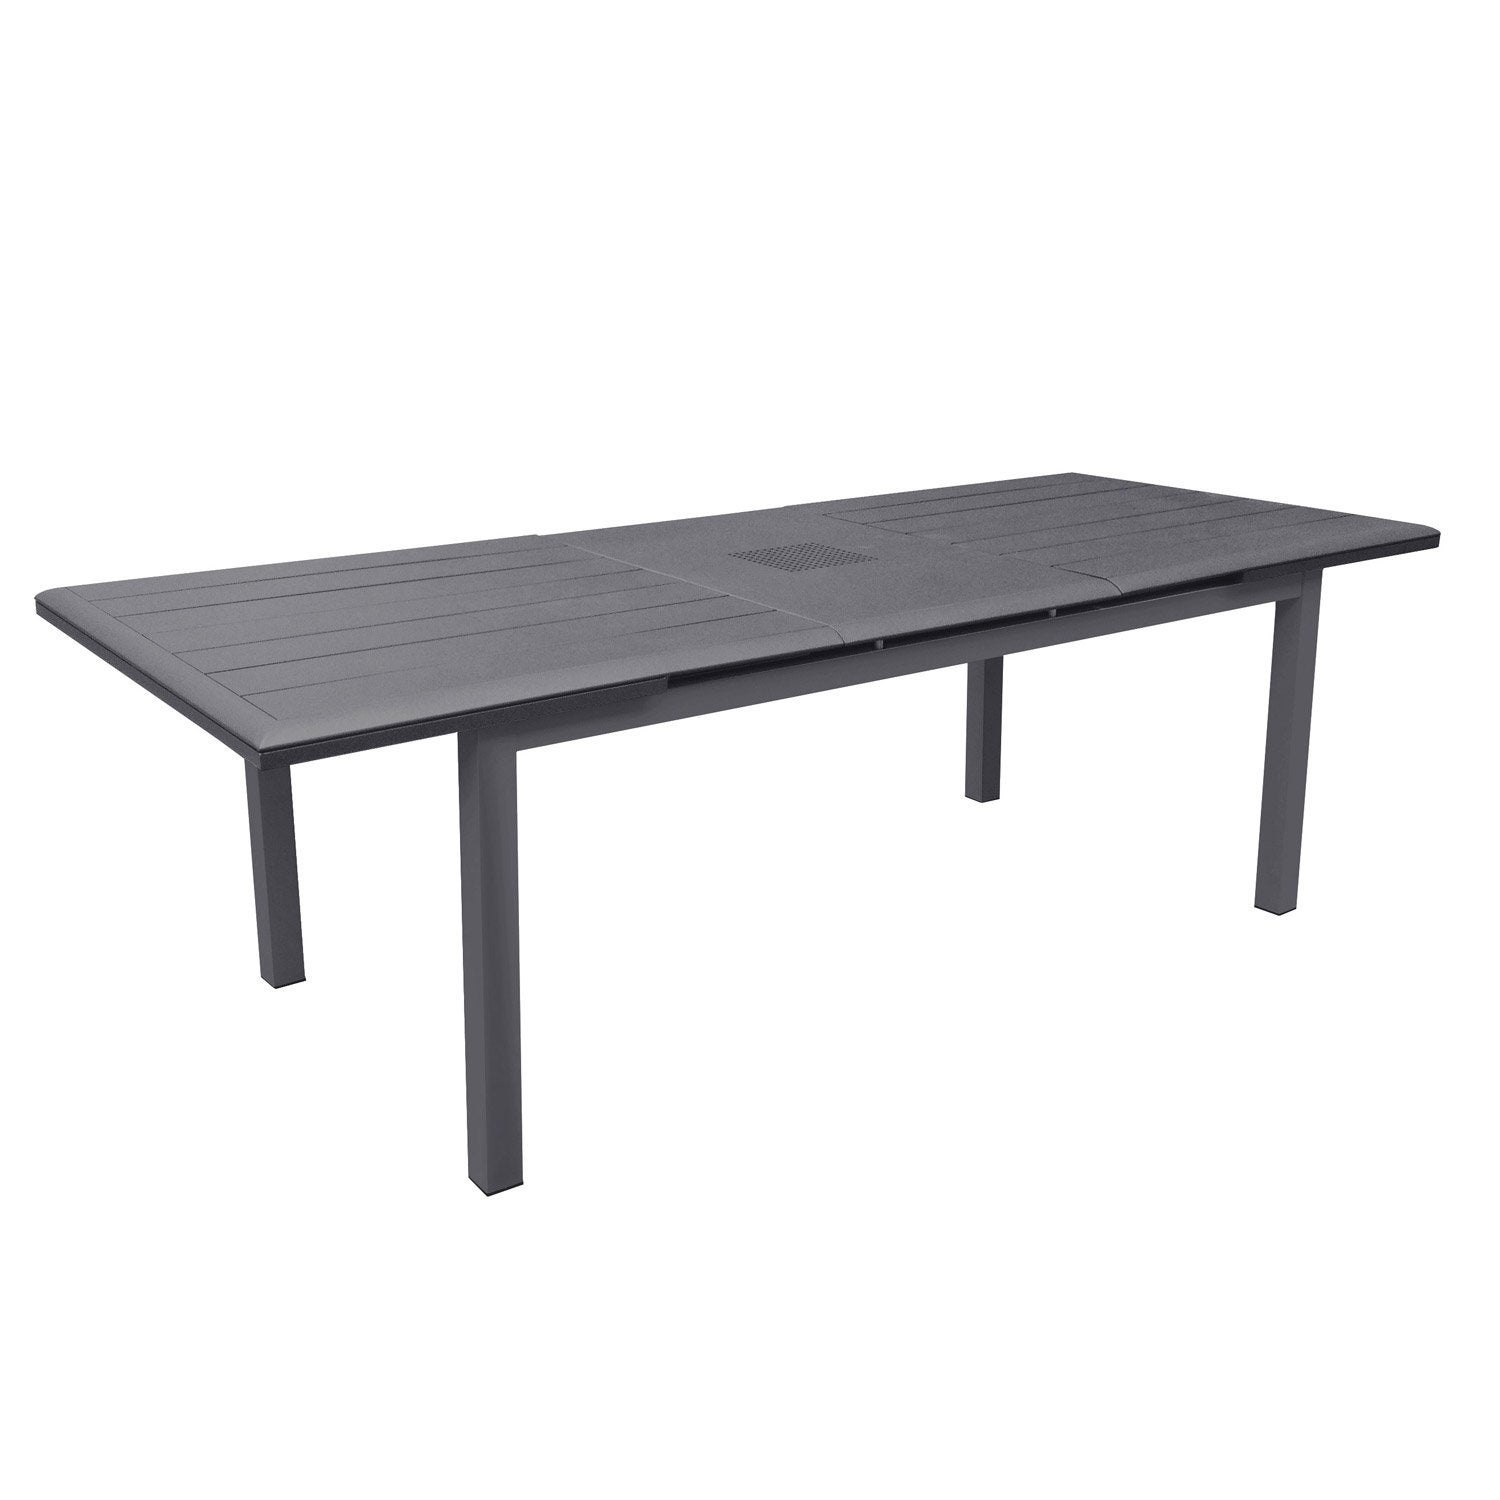 Table de jardin louisiane rectangulaire gris 6 8 personnes for Table extensible 6 a 8 personnes blooma